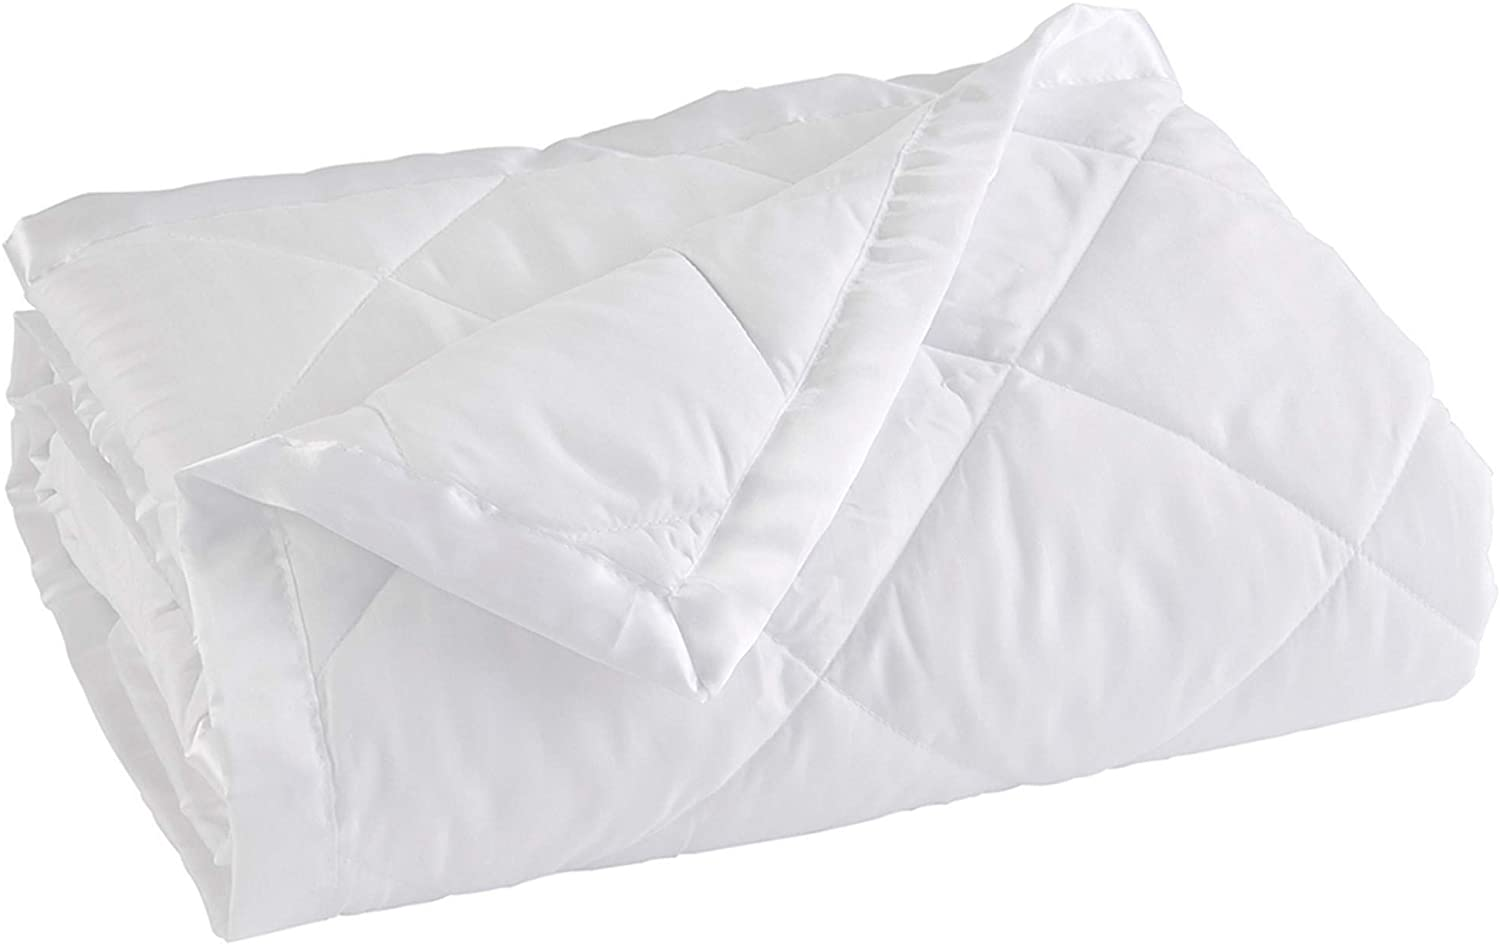 Home Fashion Designs Lightweight Twin Goose Down Alternative Blanket with Satin Trim. Romana Collection, White